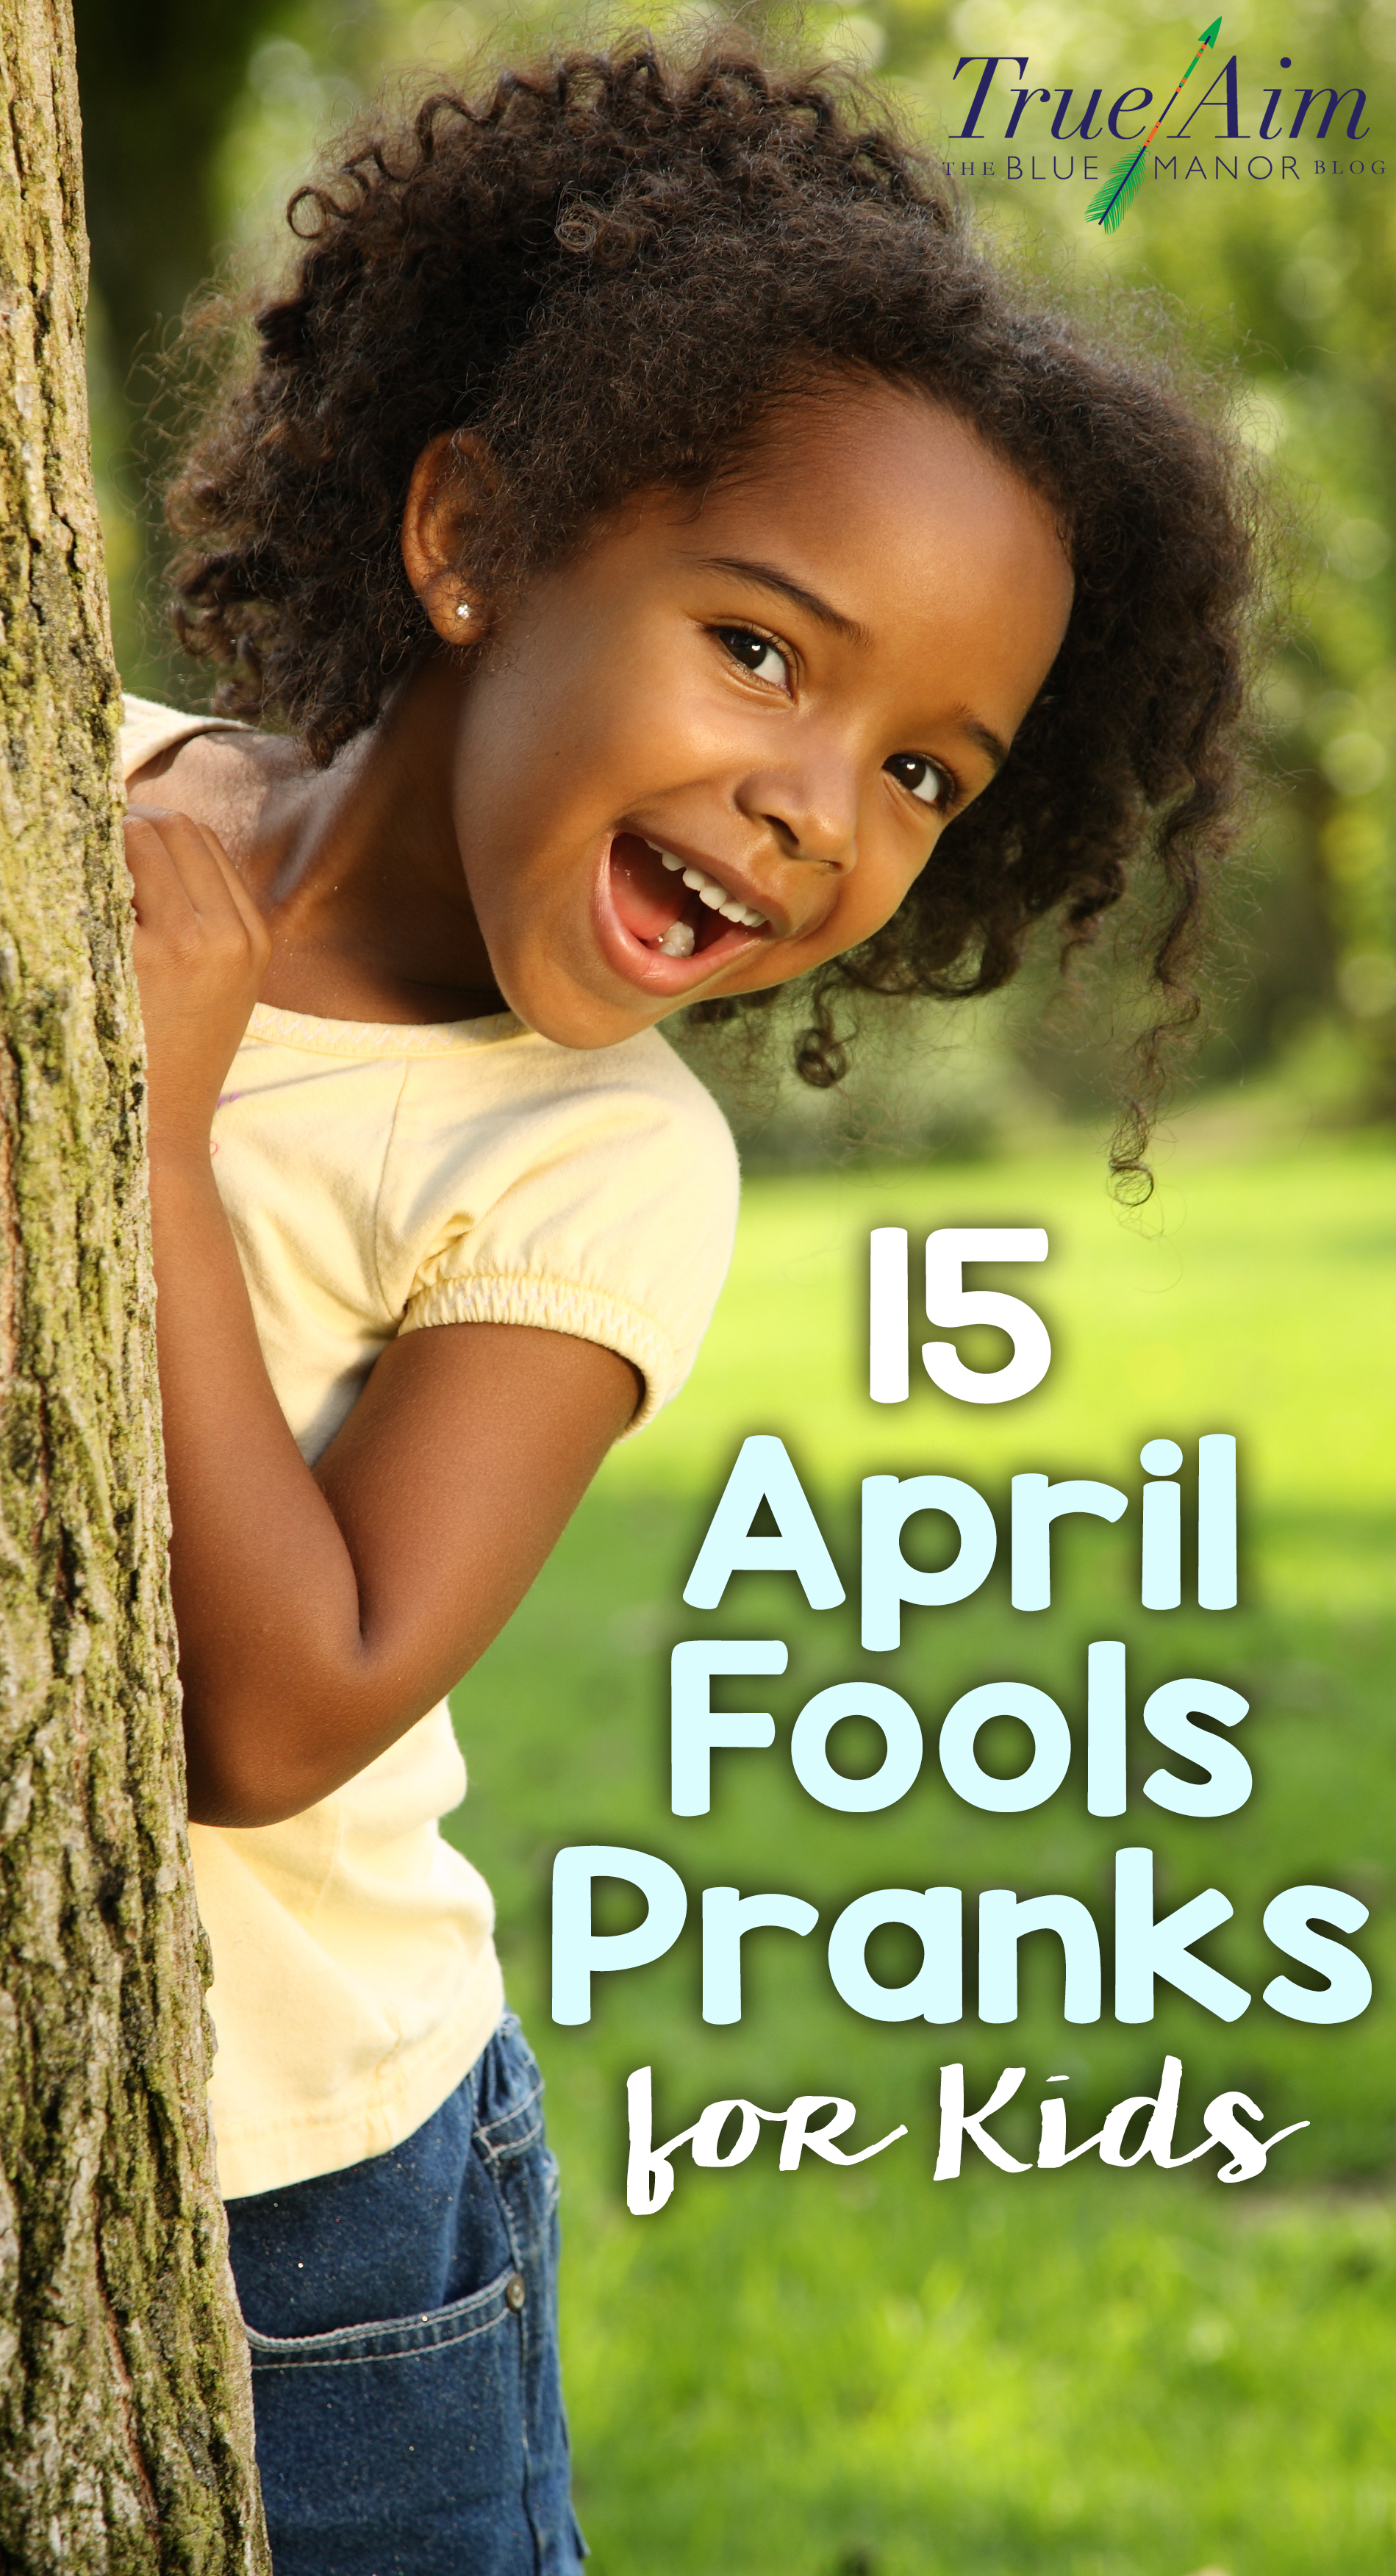 There's nothing I enjoy more than harmless pranks! Here are 15 easy and fun April Fools pranks for kiddos and families!